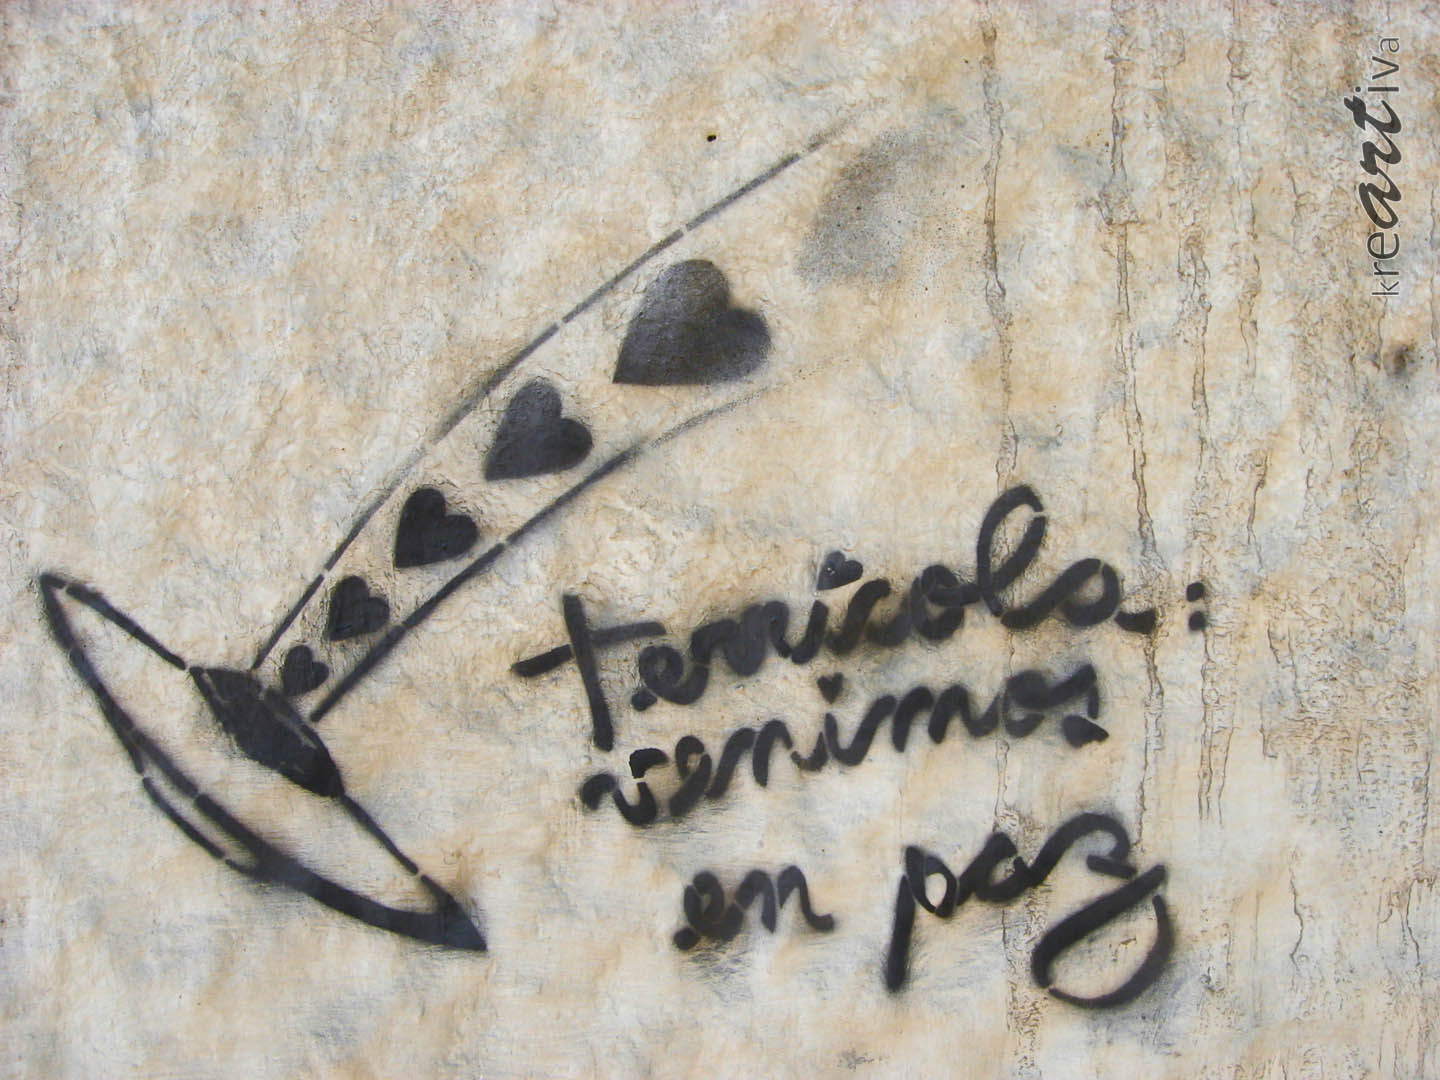 Erdlinge, wir kommen in Frieden! Terrestrials, we come in peace! Terricola: venimos en paz! Santiago Chile 2009